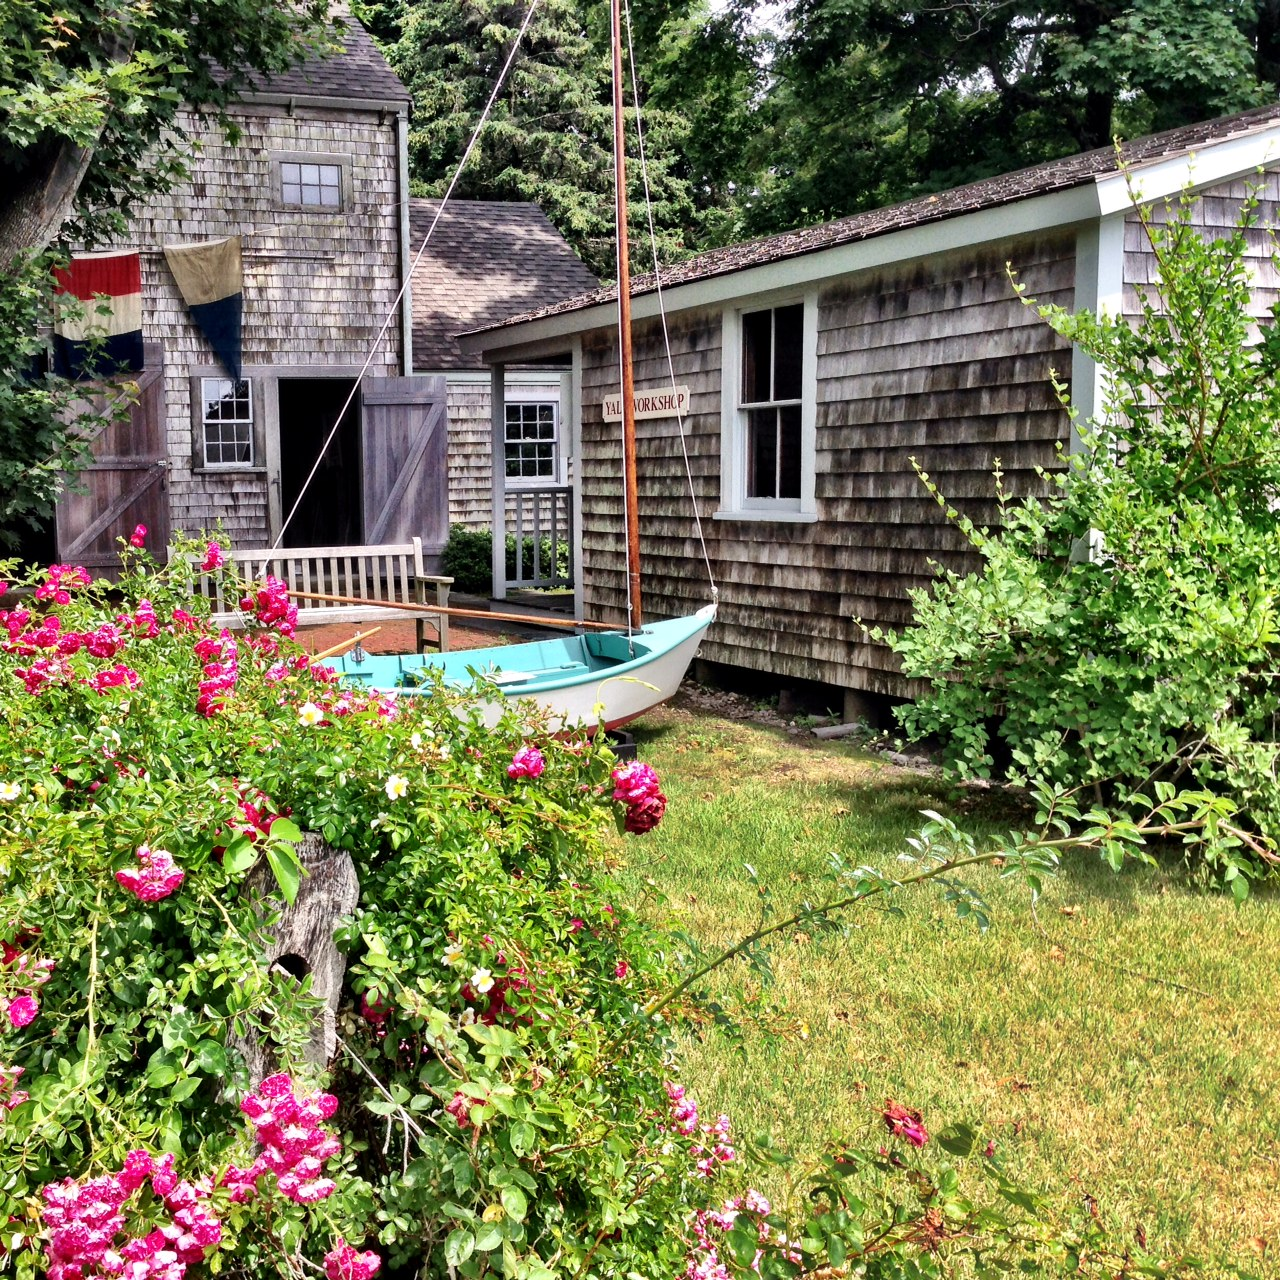 Cape Cod Museums In Woods Hole, A Village Of Falmouth Mass